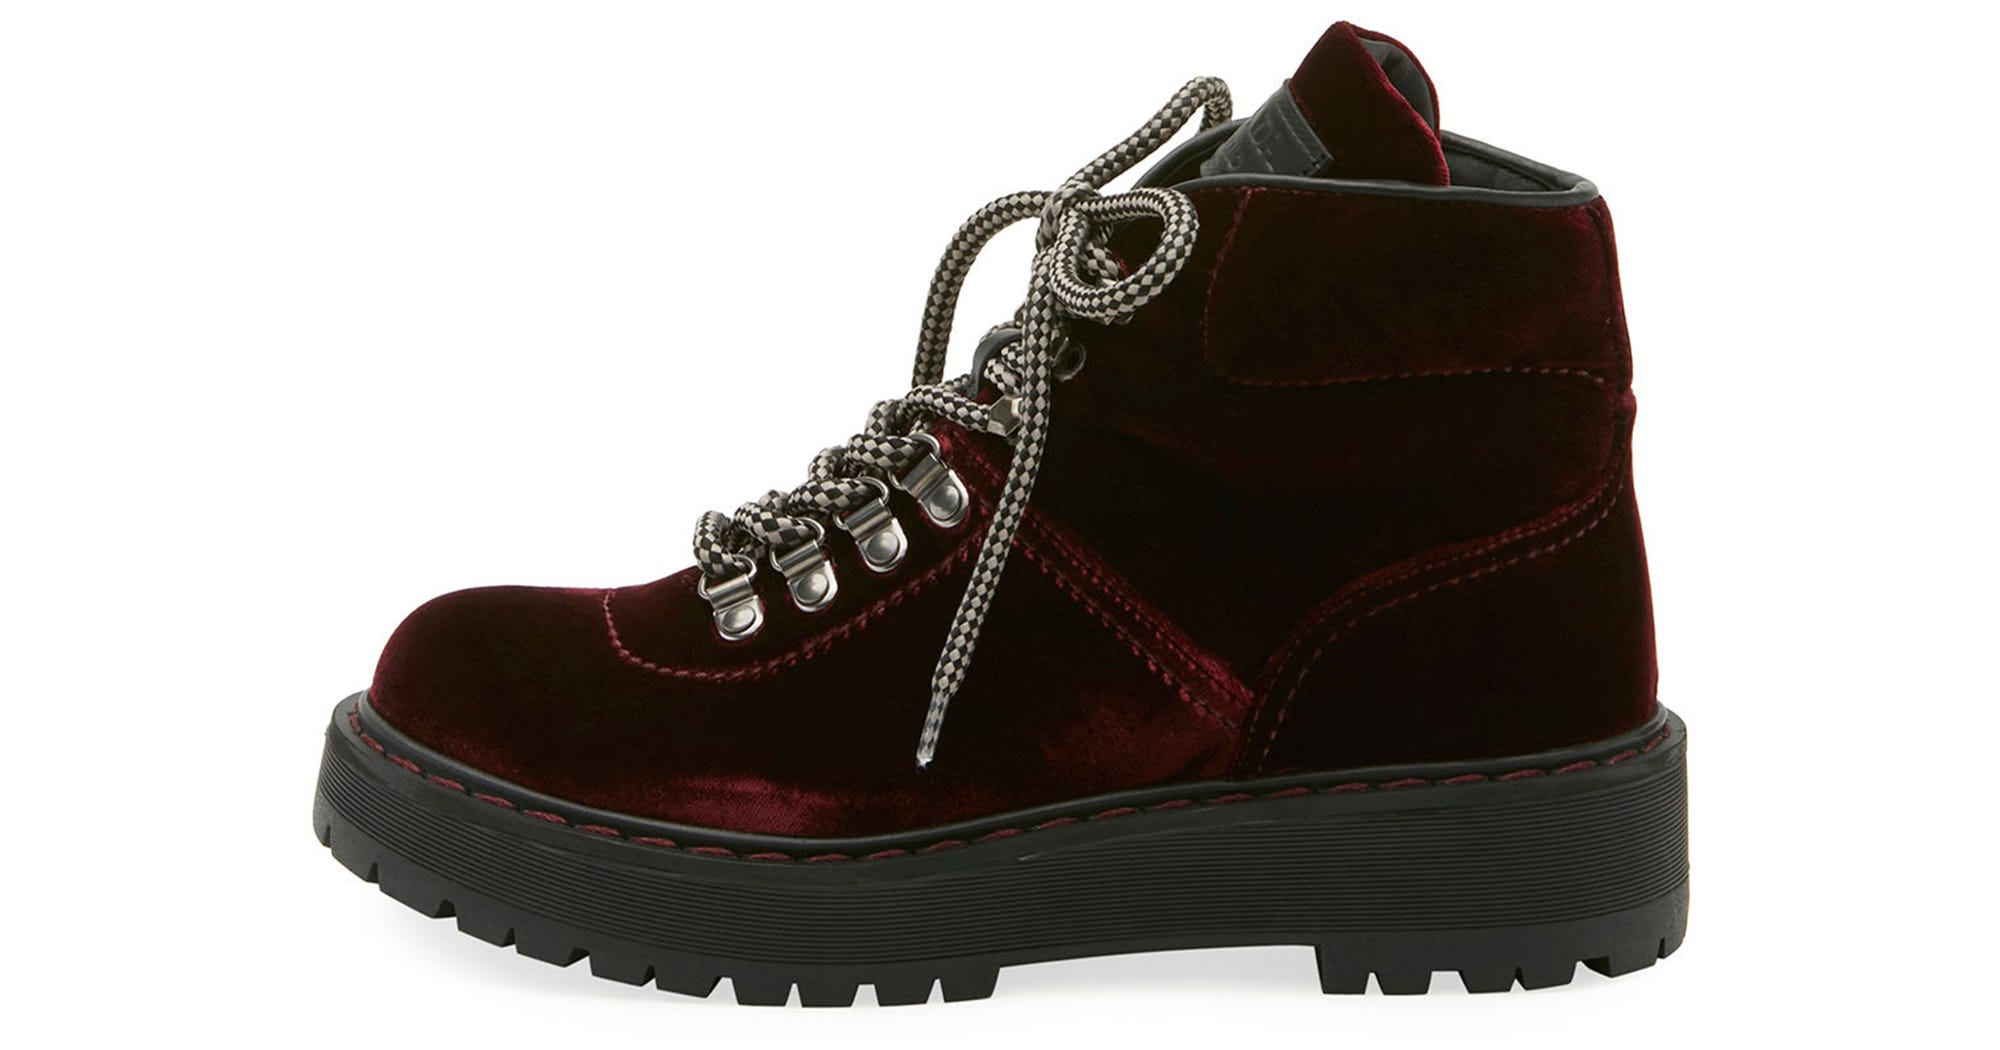 477ae3a5676 Best Winter Snow Boots For Women 2018 Bomb-Cyclone